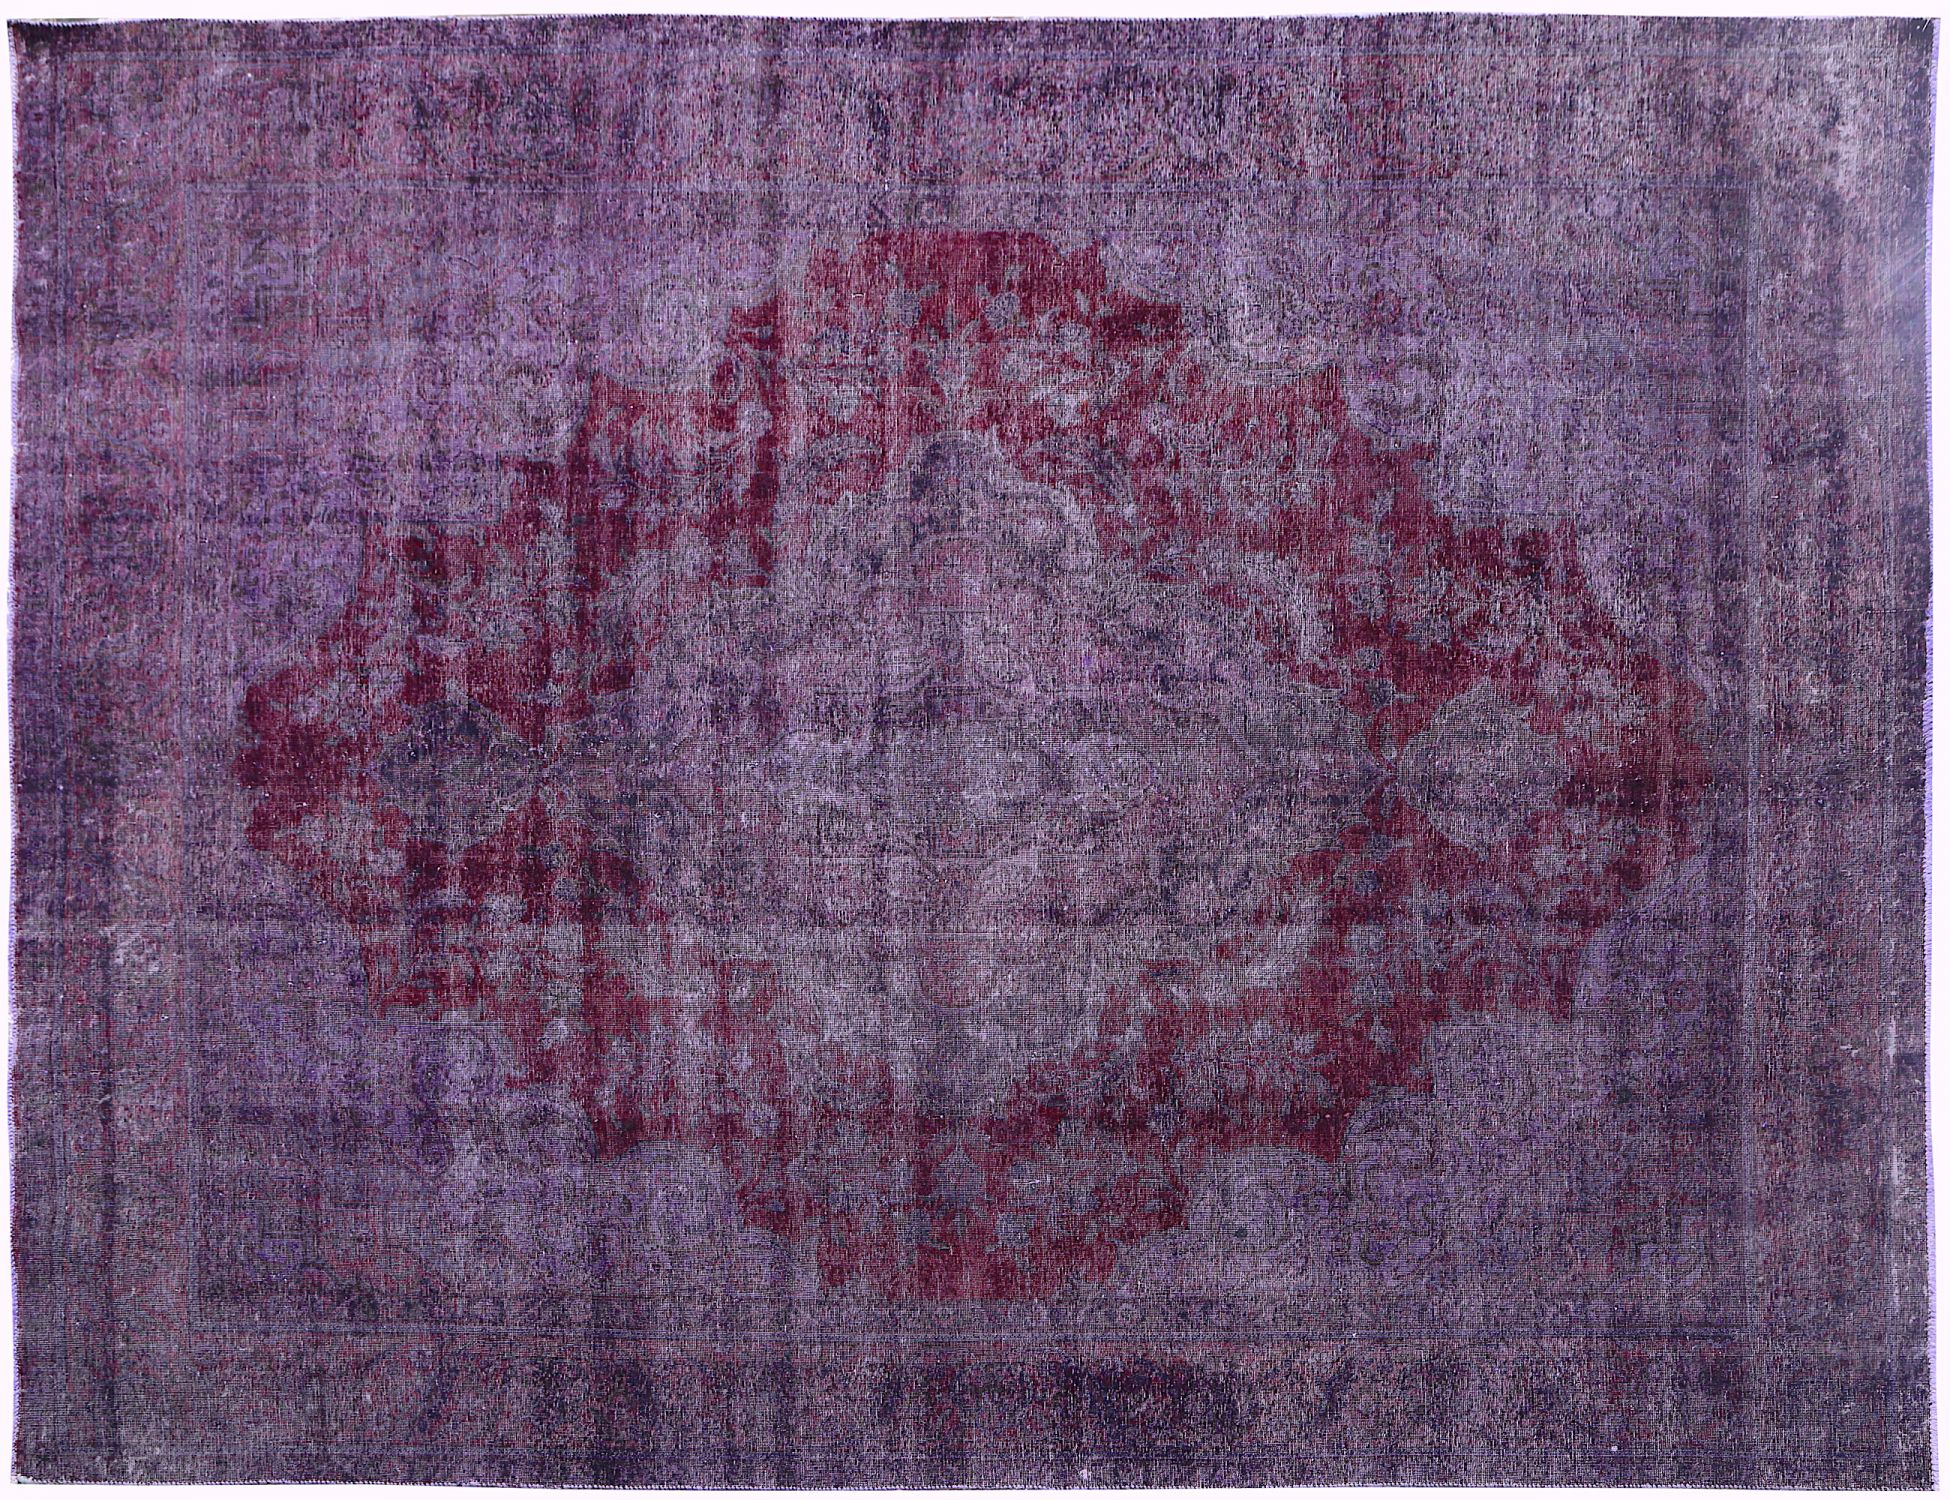 Vintage Carpet  purple <br/>388 x 297 cm